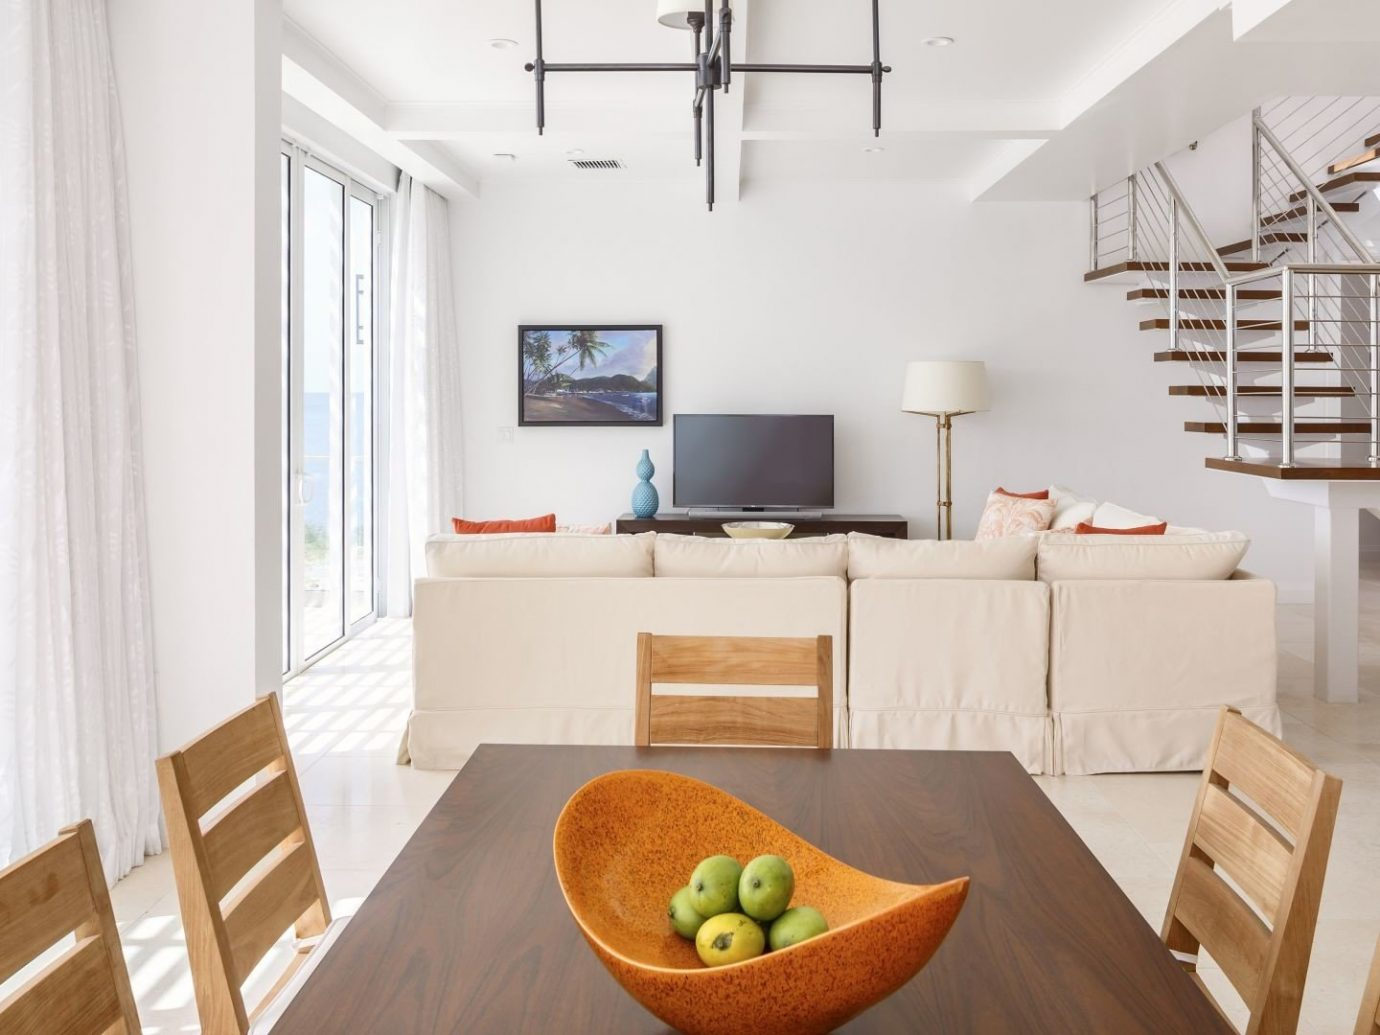 All-Inclusive Resorts Budget caribbean Hotels indoor table floor chair interior design room Architecture window living room real estate wooden Dining loft interior designer house apartment penthouse apartment ceiling daylighting wood furniture